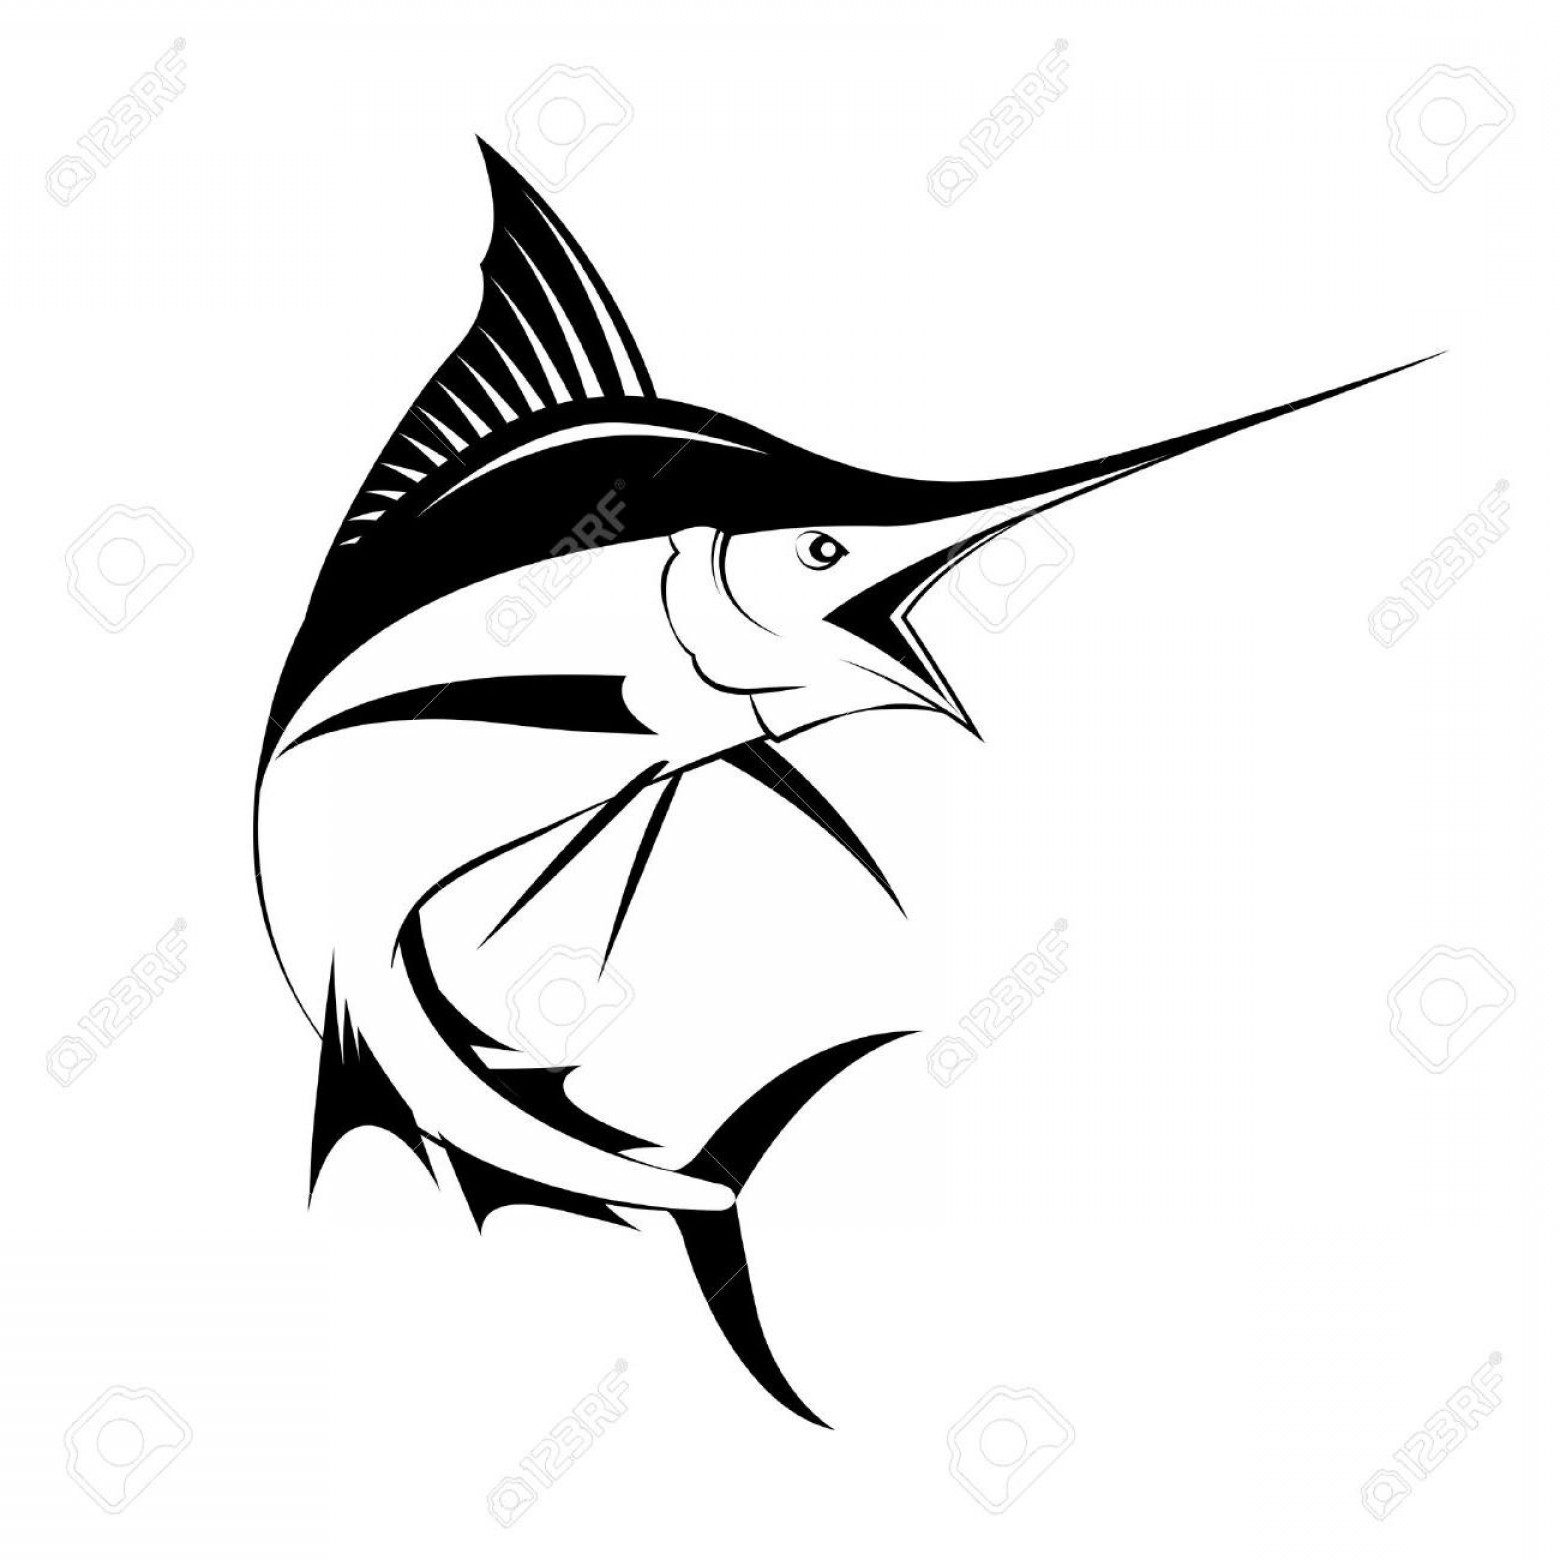 Sailfish clipart black and white svg library library Best Hd Marlin Fish Vector Cdr | SOIDERGI svg library library